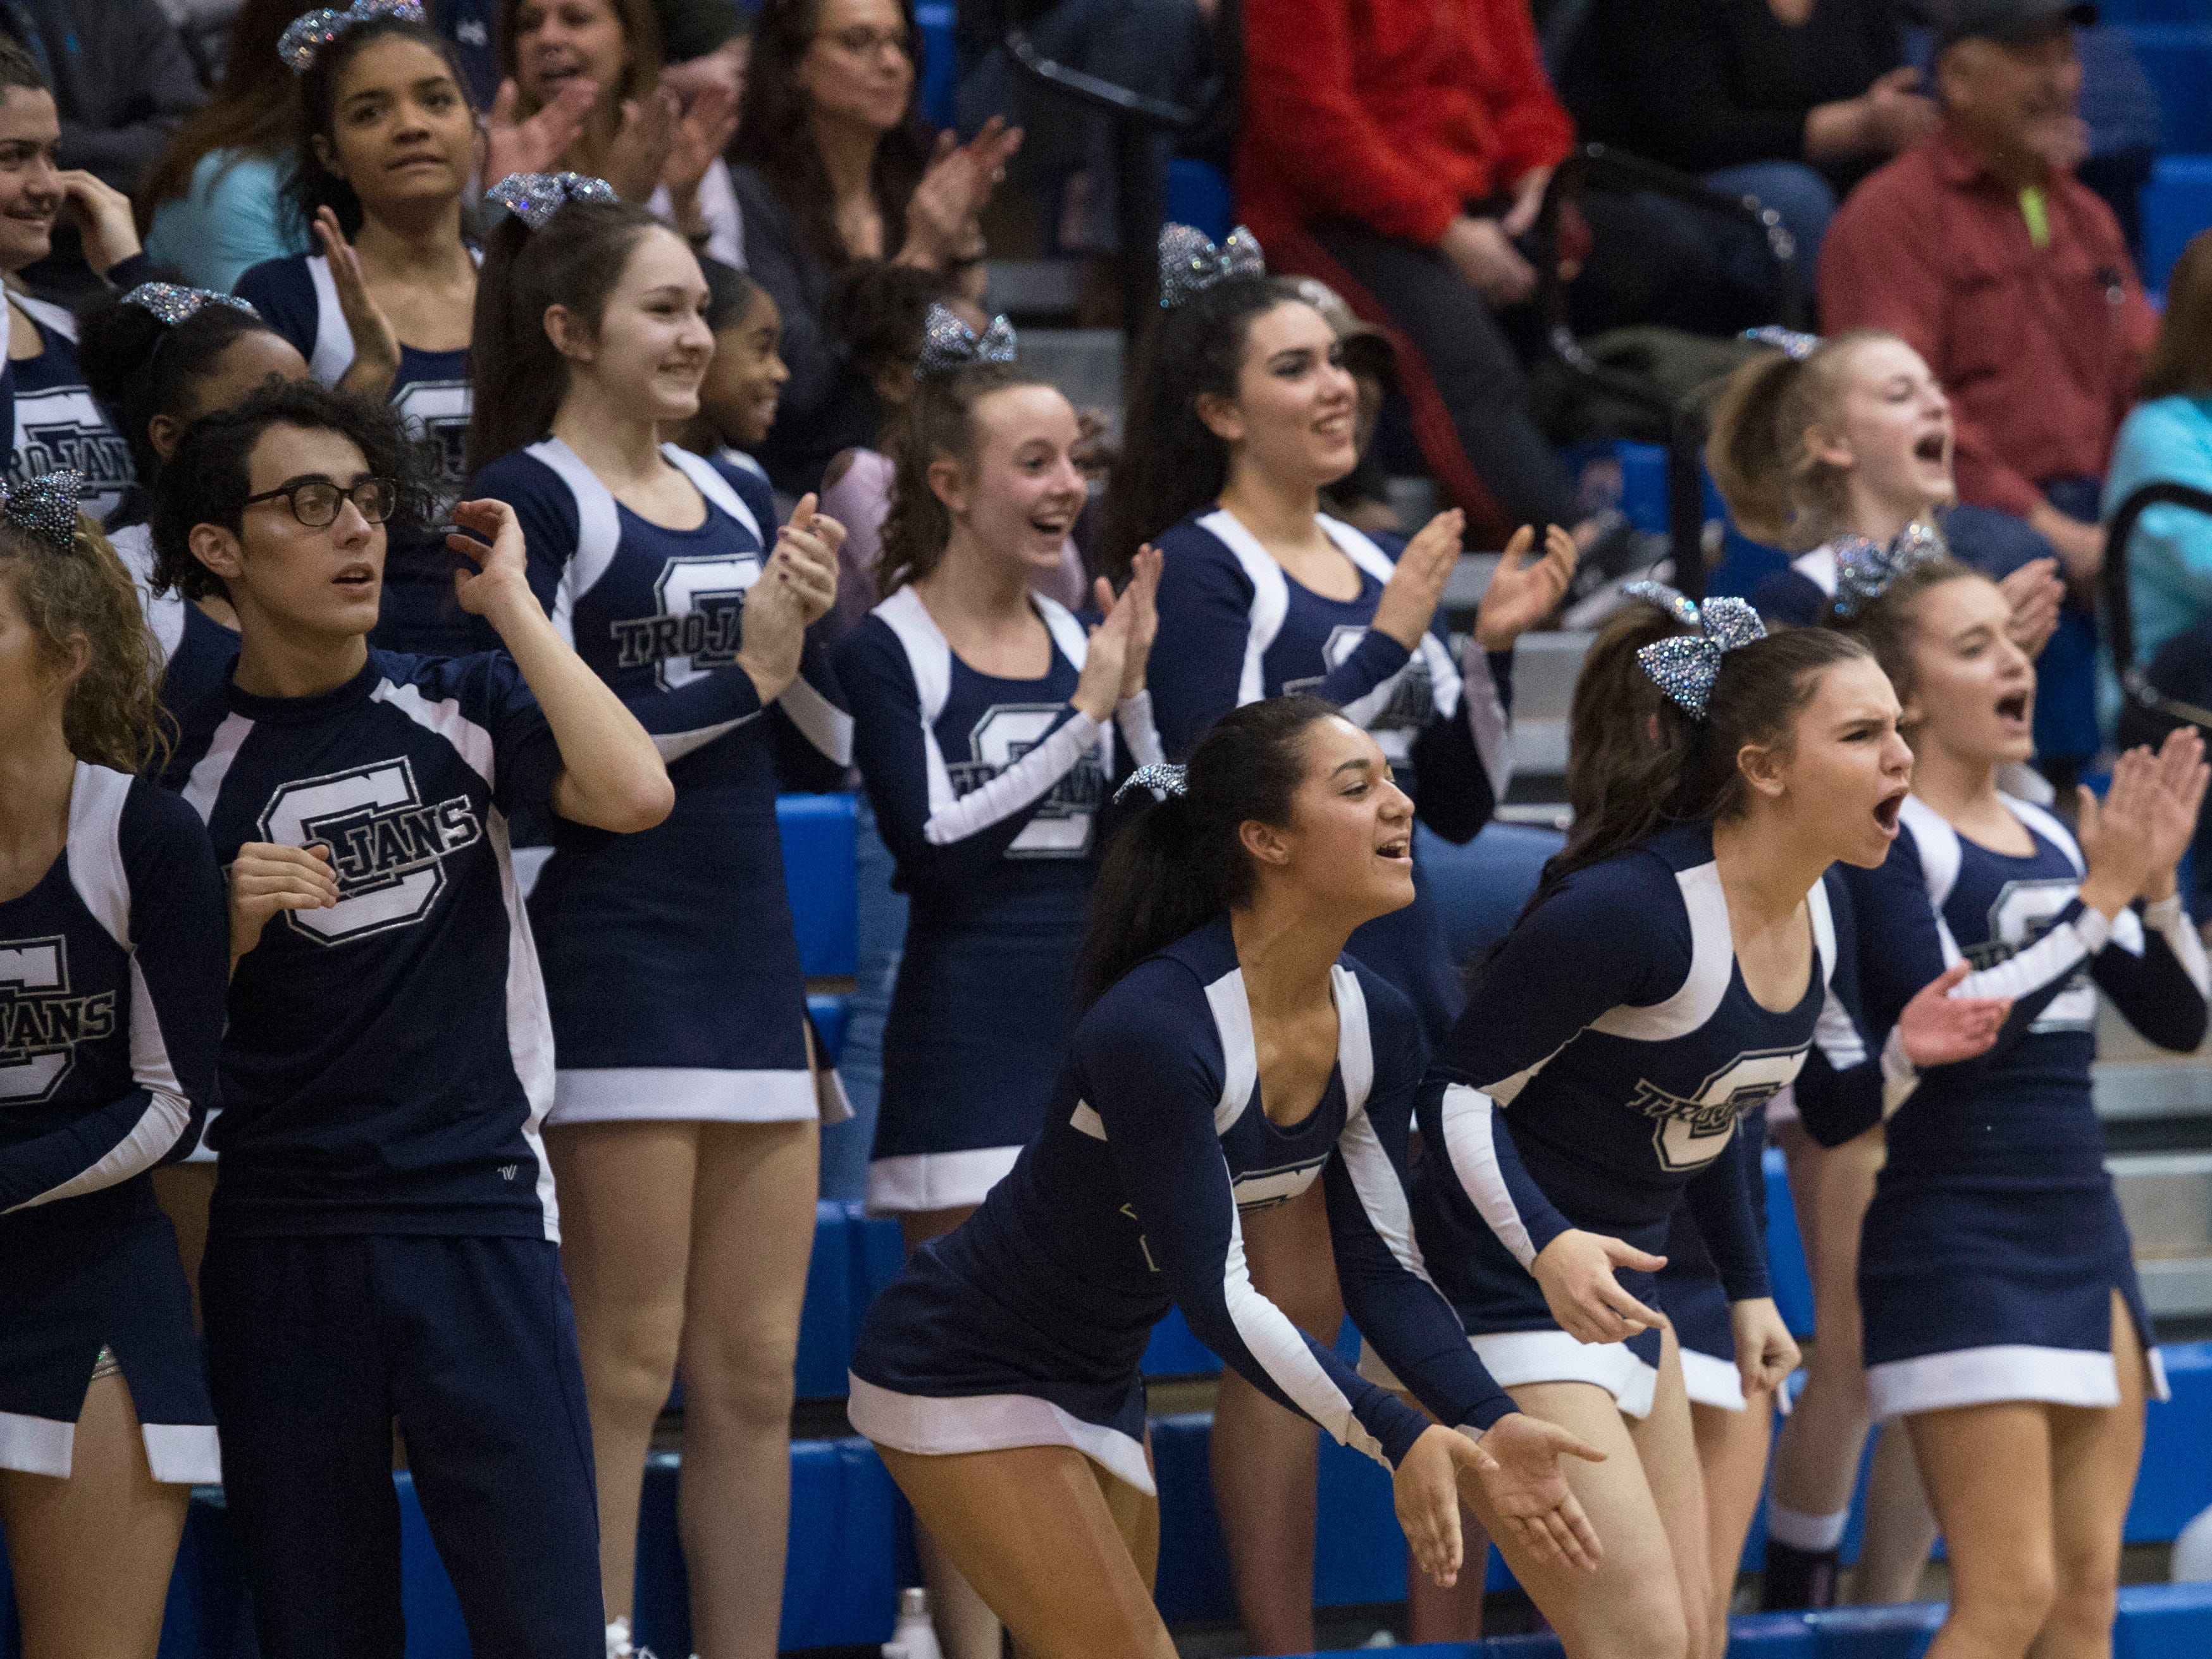 Chambersburg cheerleaders cheer on the team after a Tyler Collier shot ties the game. Chambersburg dropped a buzzer beater 42-40 to State College during a District 3 basketball, Friday, Dec. 14, 2018.